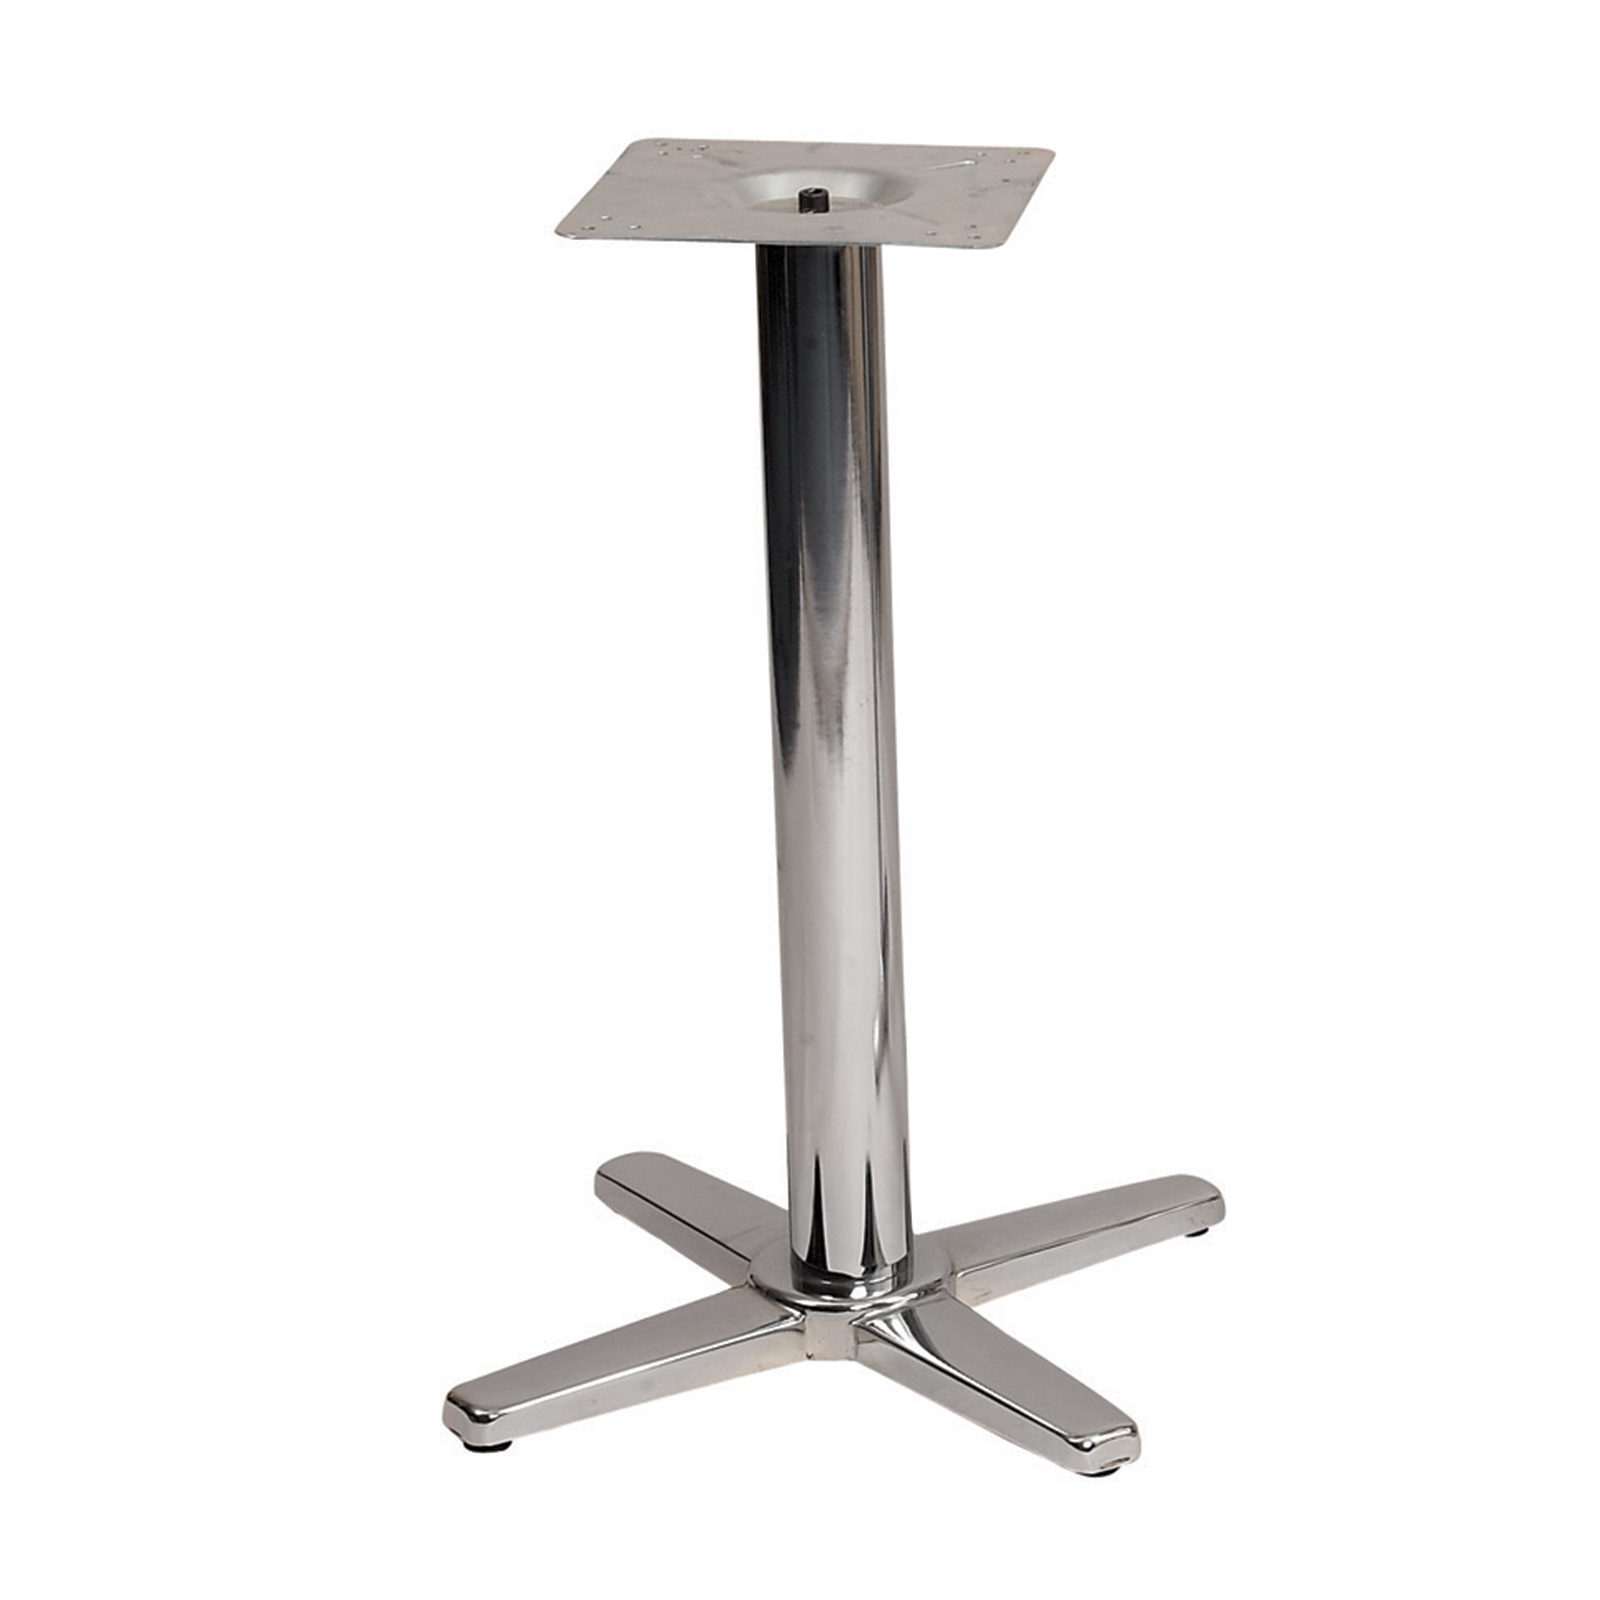 G & A Commercial Seating CQ2222 table base, metal